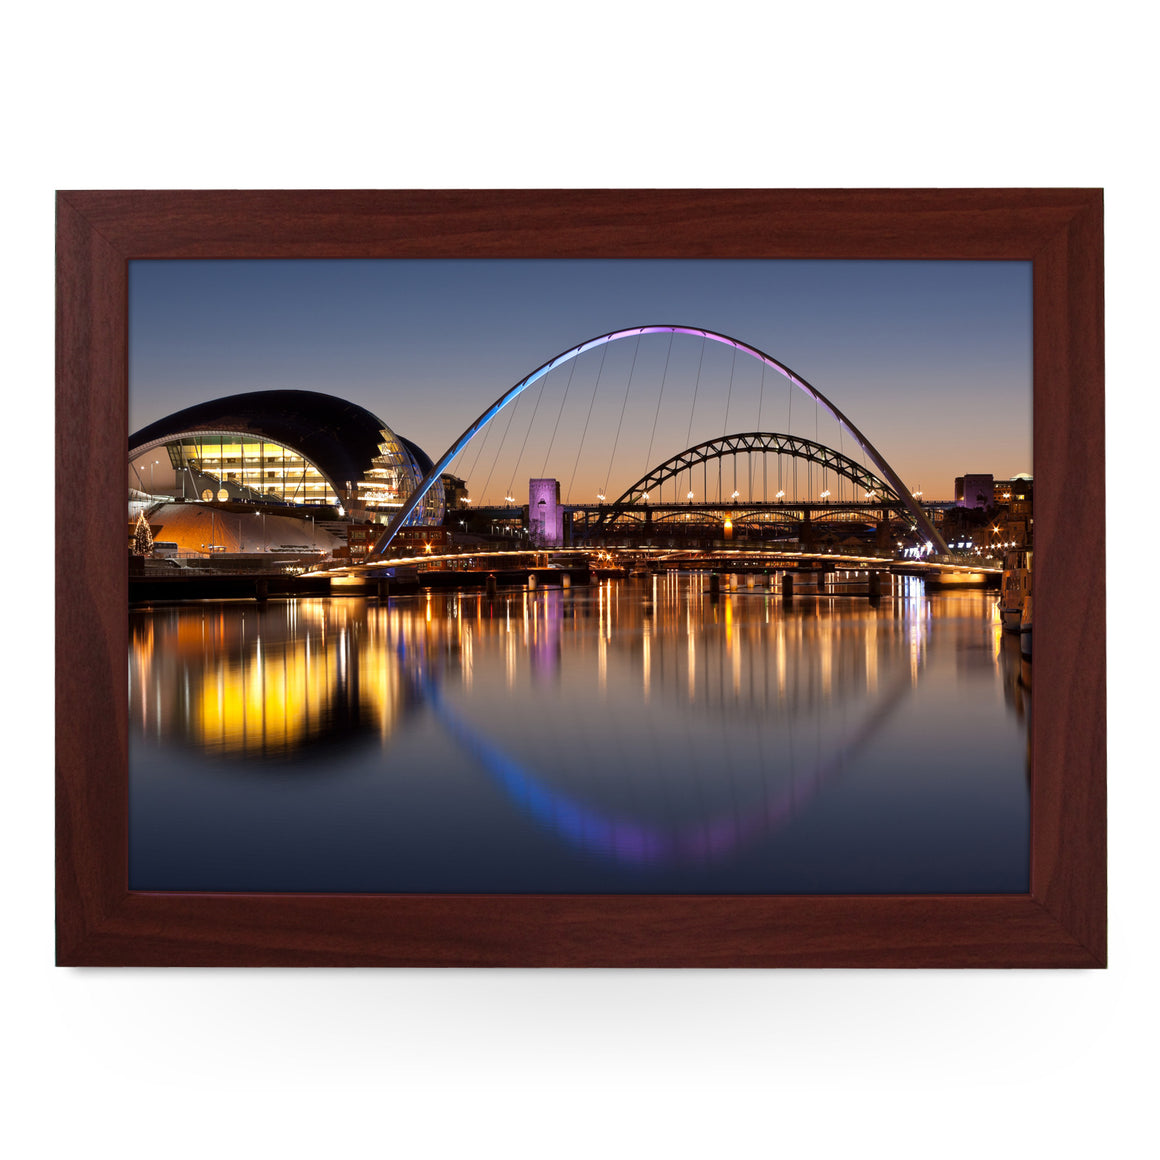 Tyne Bridges at Sundown Lap Tray - L0109